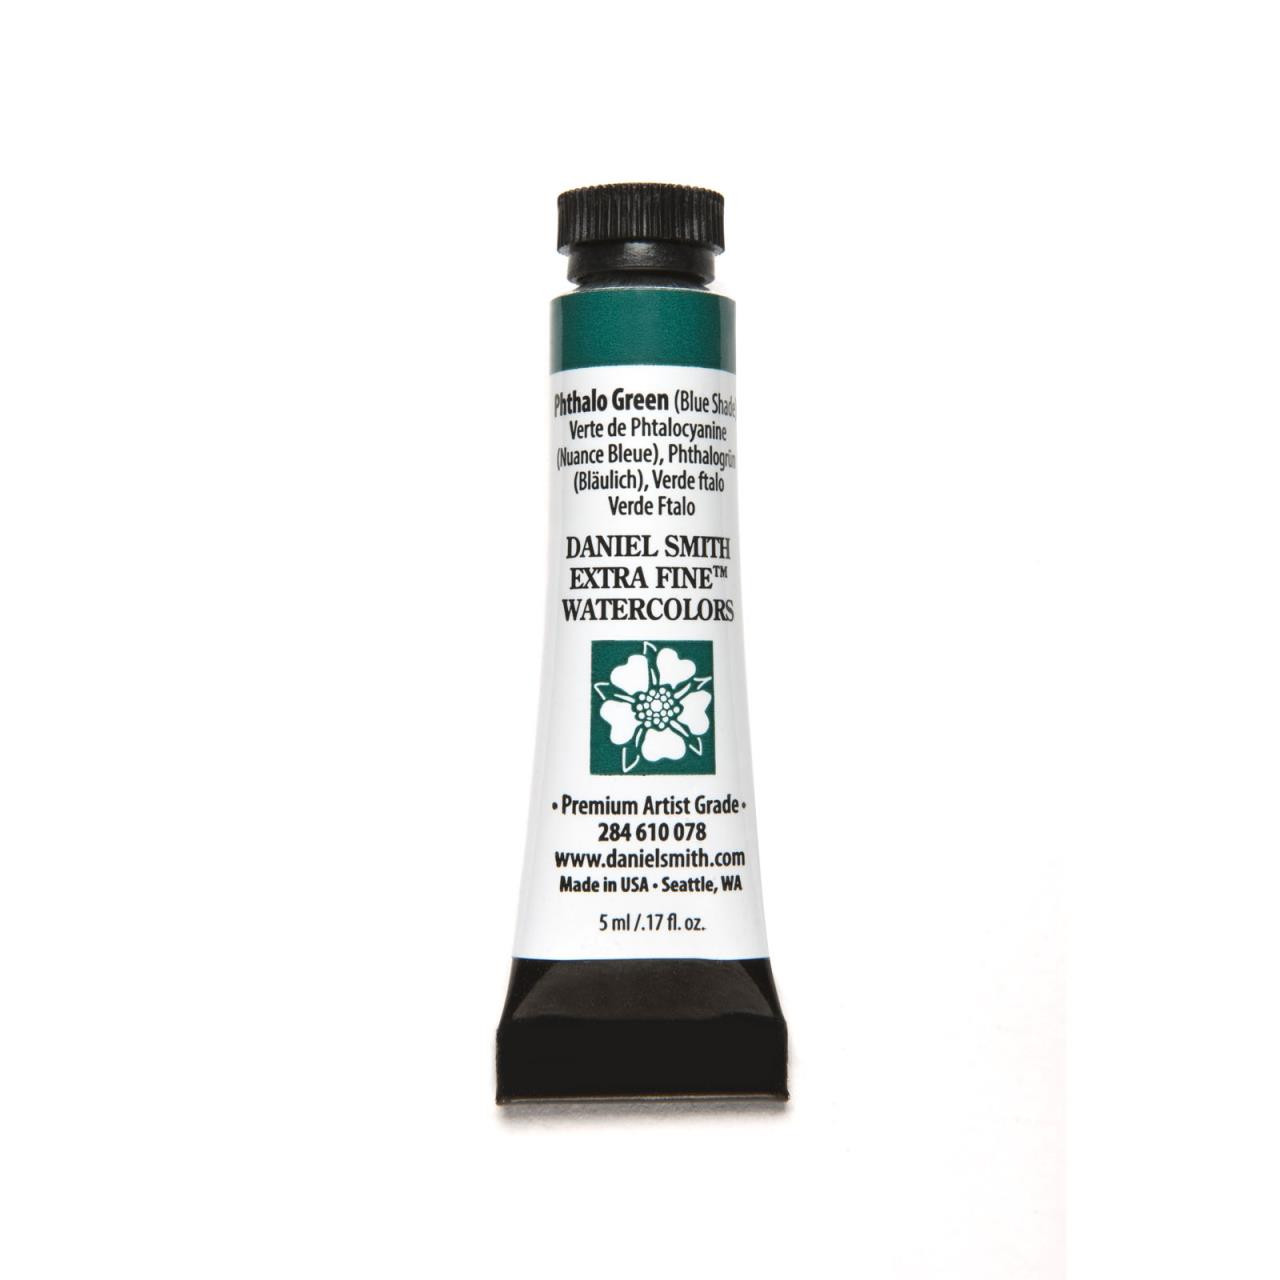 Phthalo Green - Blue Shade, DANIEL SMITH Extra Fine Watercolors 5ml Tubes -